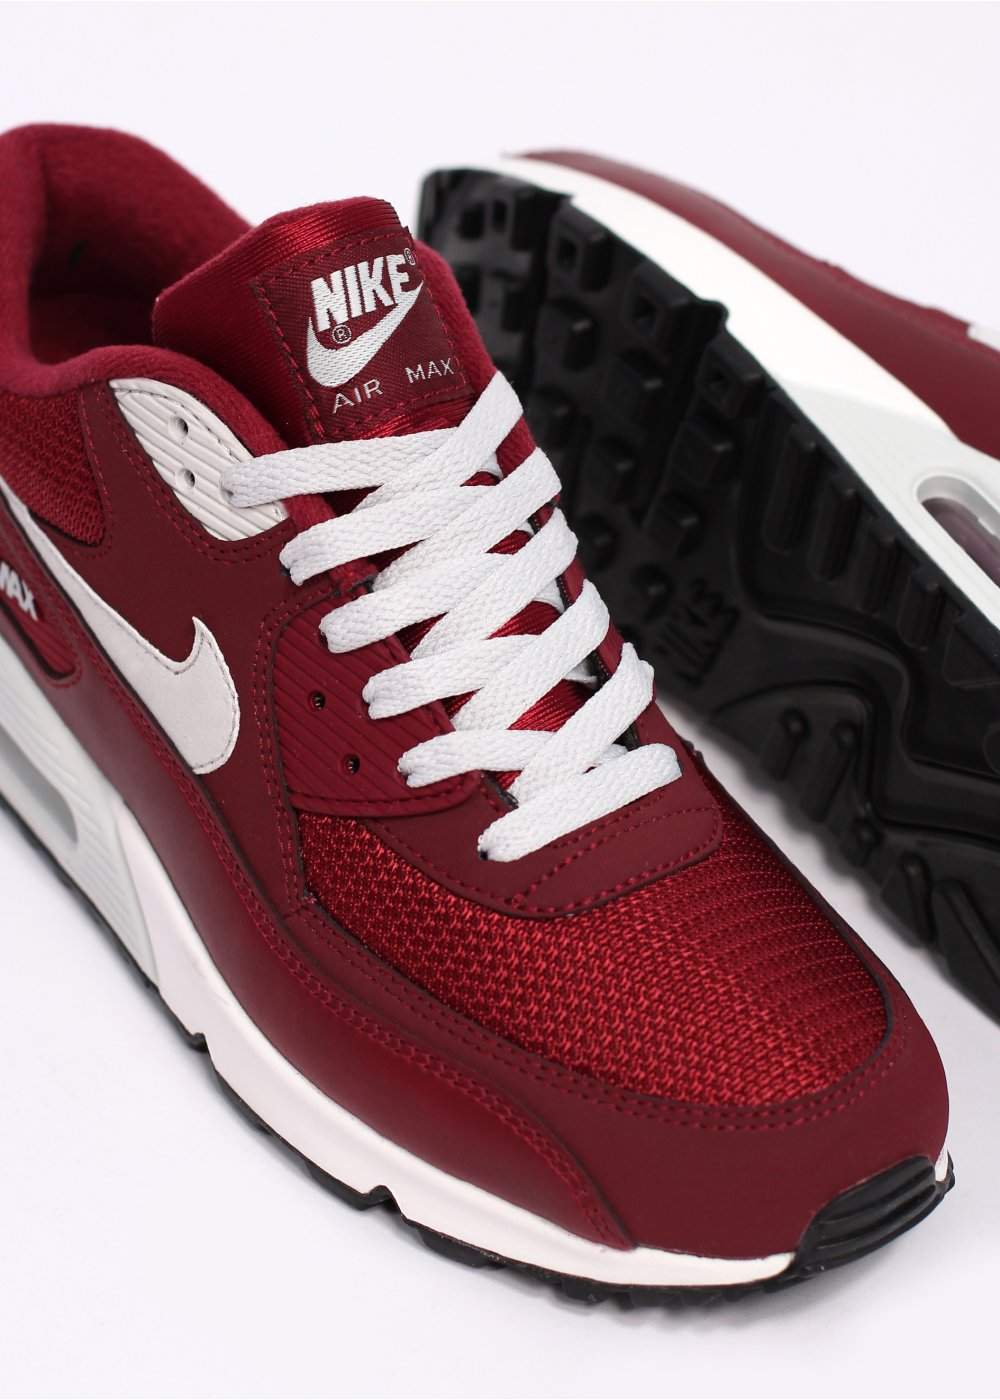 premium selection 6487a a21bc where to buy nike air max 90 essential gym red white black right c698c  acd62  sale air max 90 essential trainers team red sail 03732 f7706